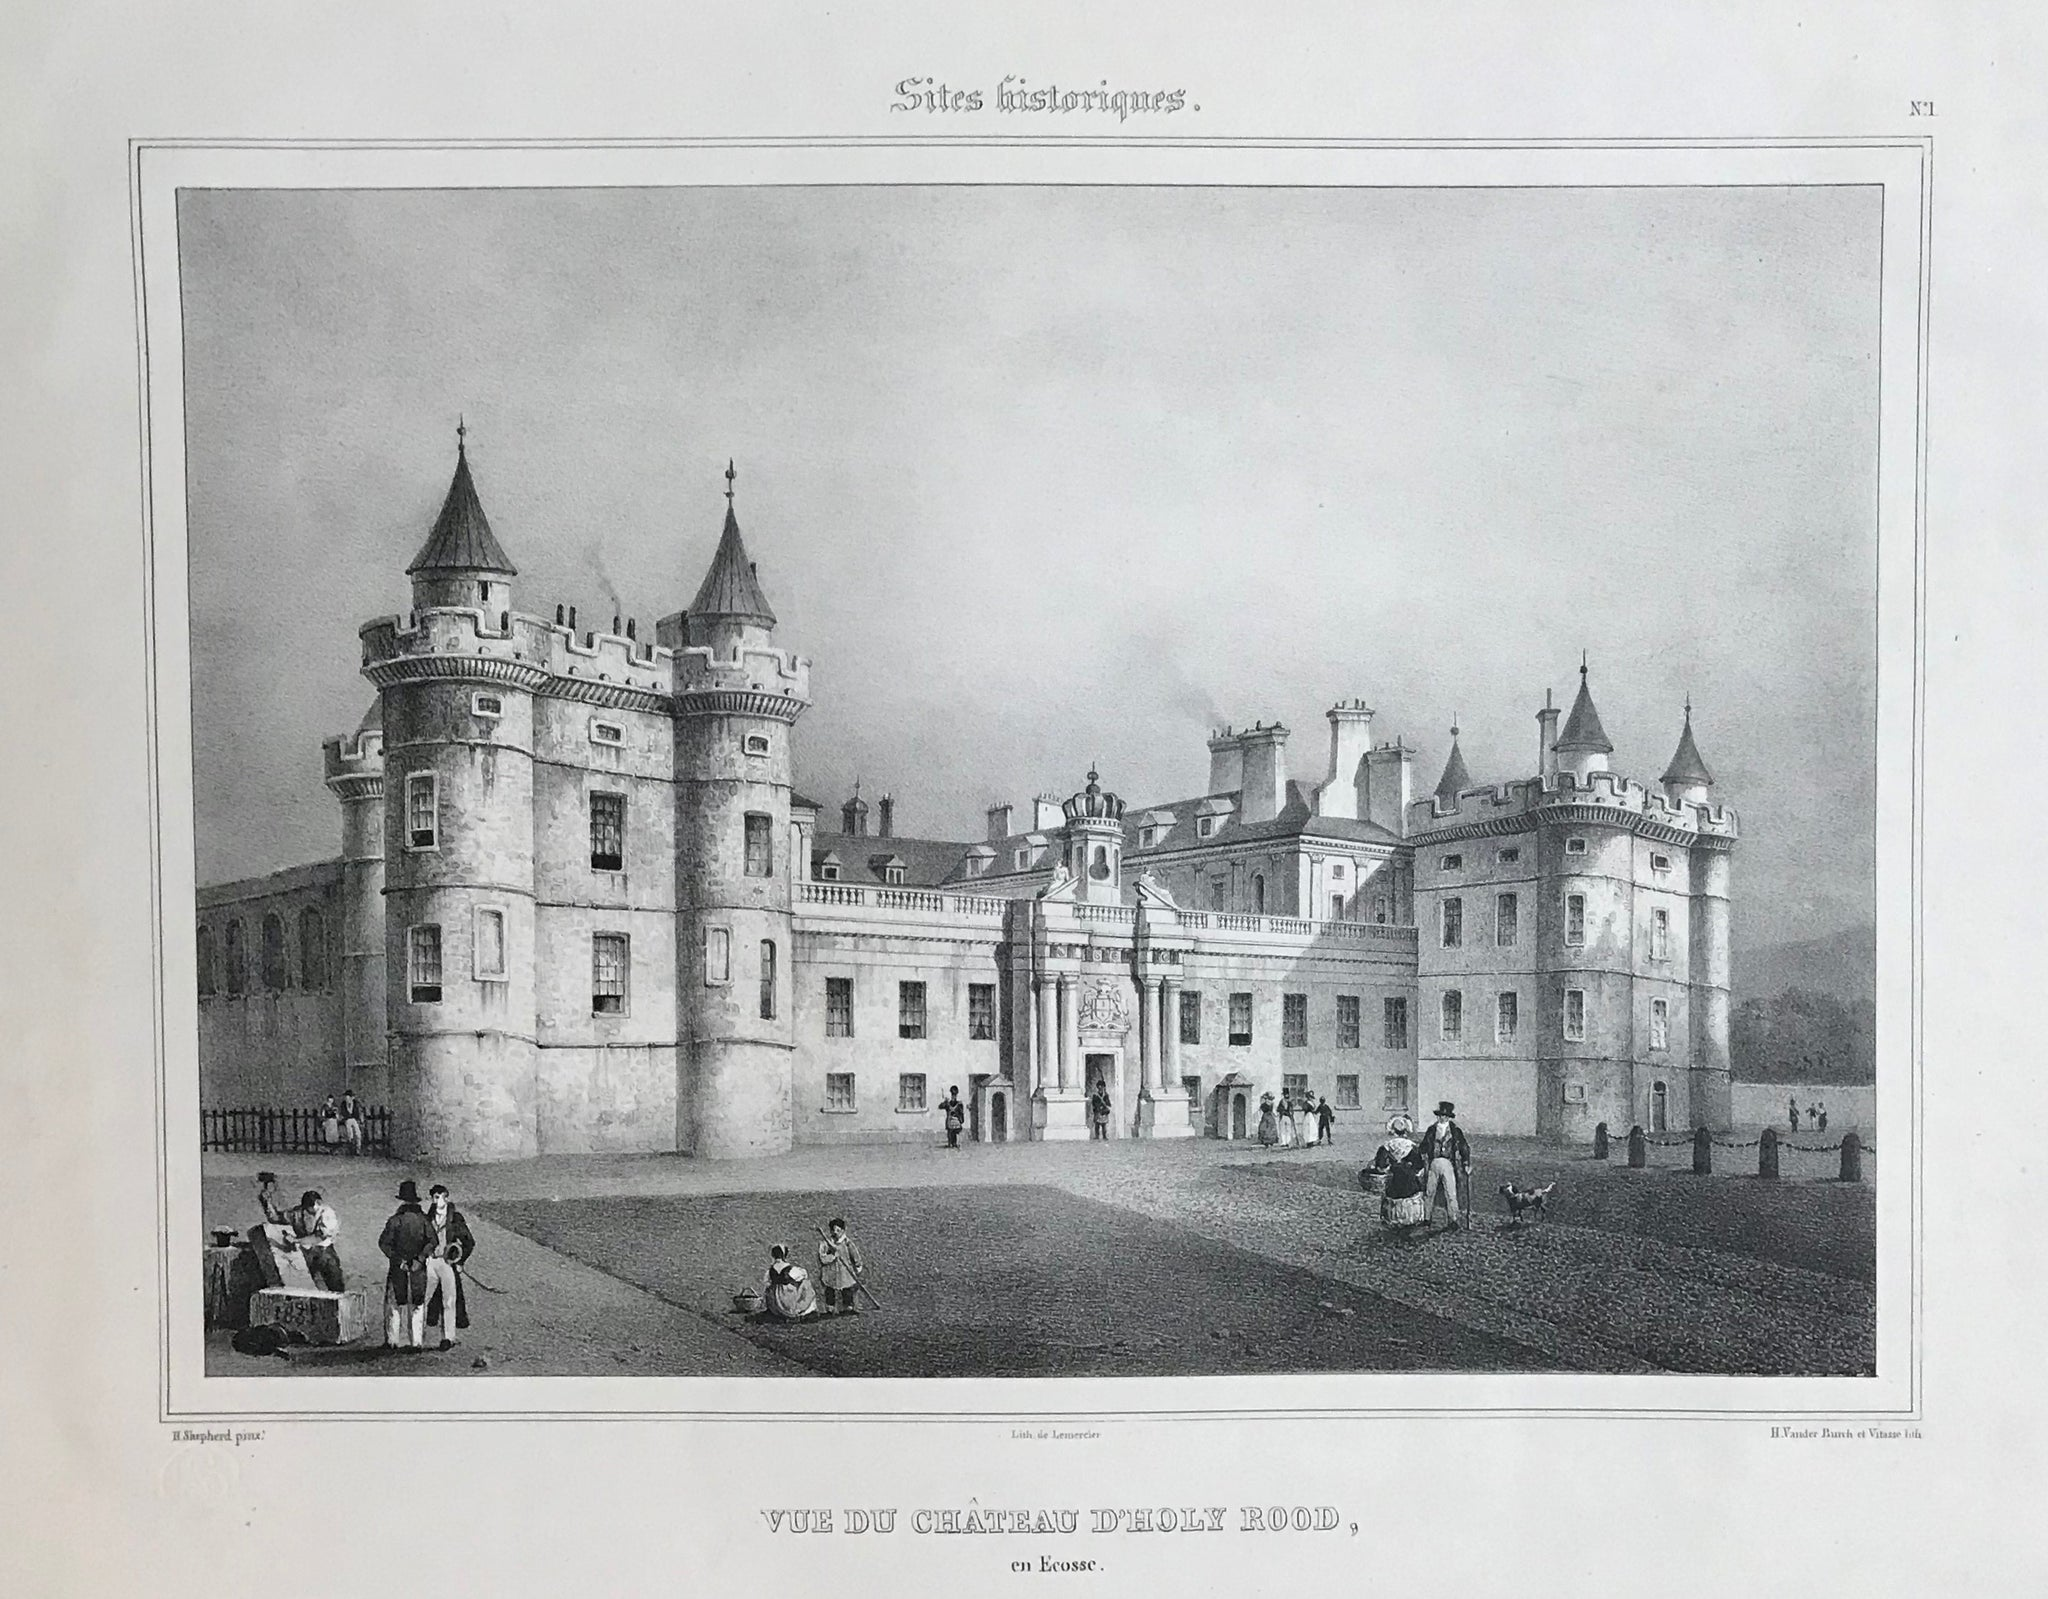 """Vue du Château D'Holy Rood, en Ecosse.""  Lithograph by H. Vander Burch et Vitasse after H. Shepard, ca 1850. Fine, clean print with wide margins. Paper stamp in lower left."